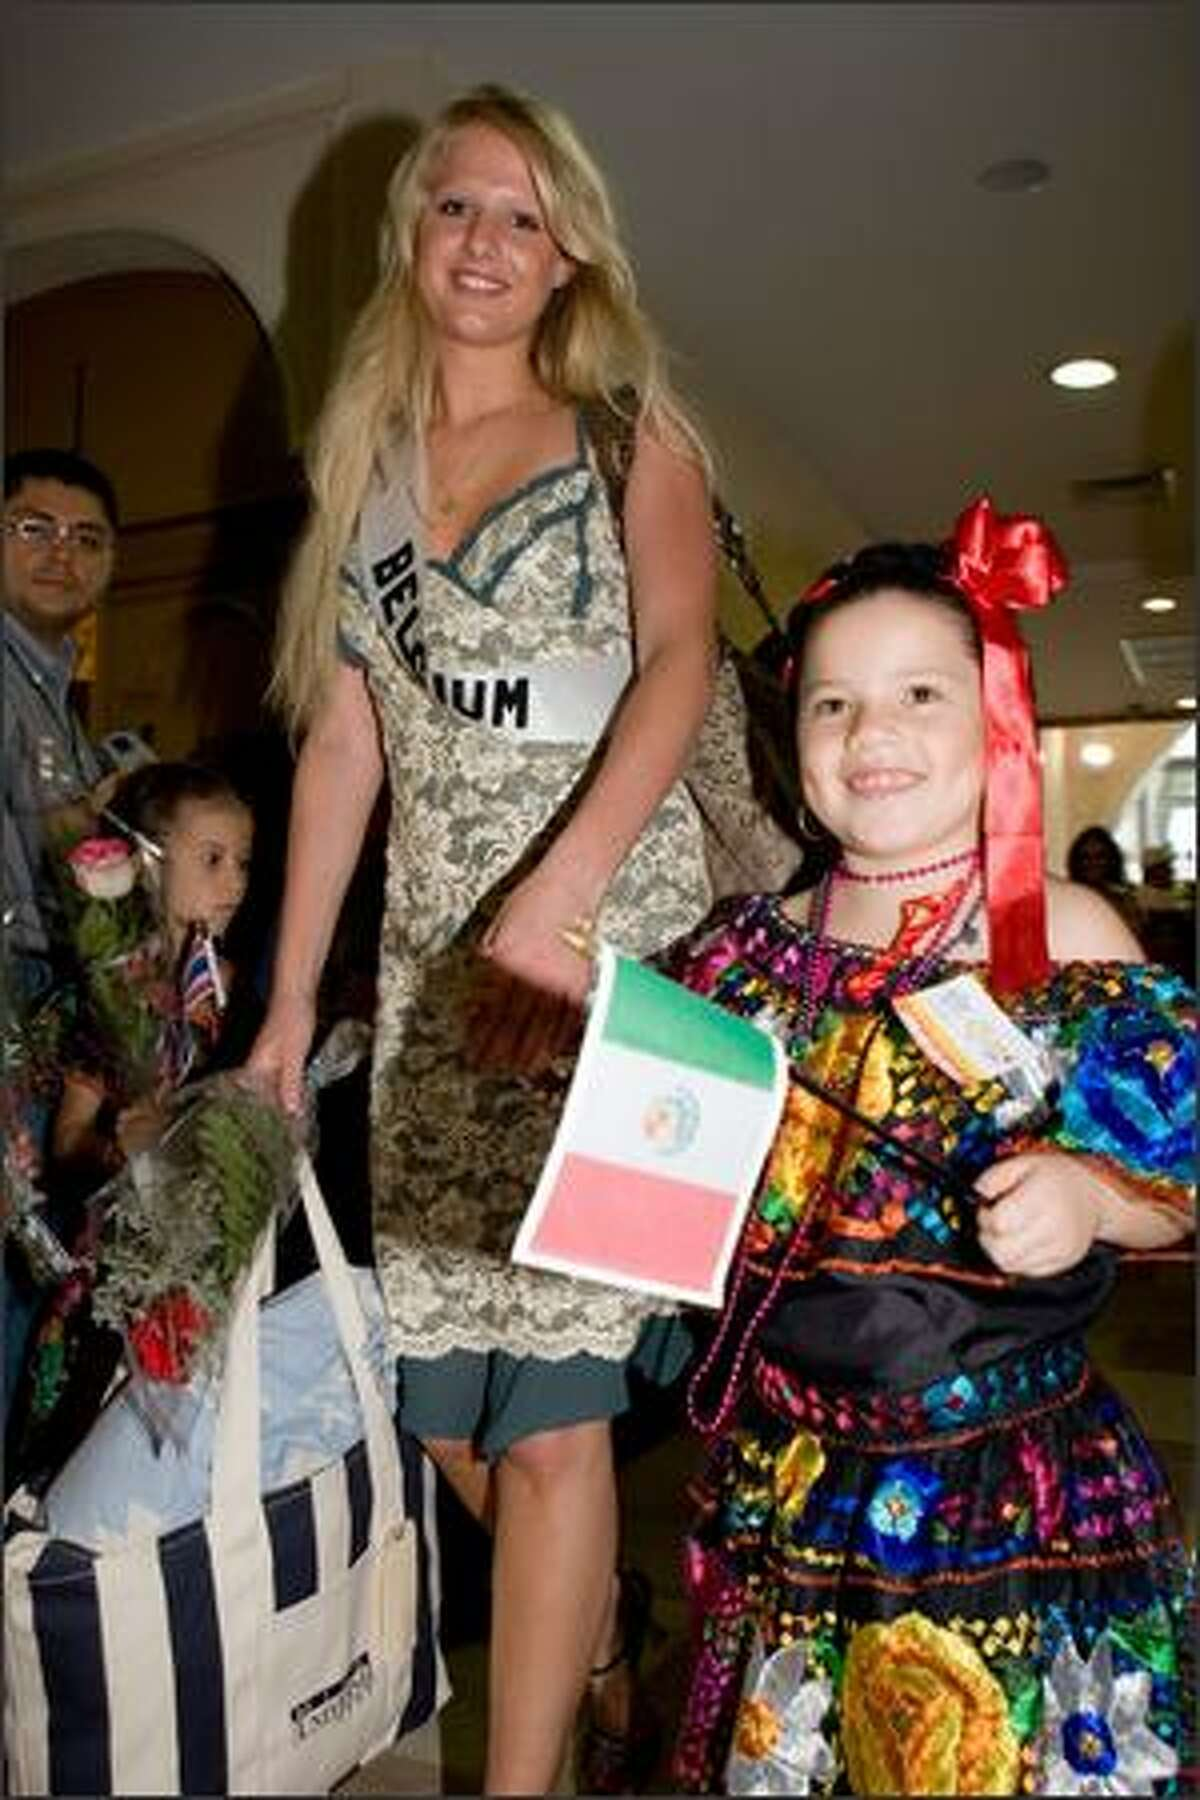 Annelien Coorevits, Miss Belgium 2007, is escorted by a child in traditional Mexican attire to the press conference and photo opportunity at the Crowne Plaza Tuxtla Gutierrez.